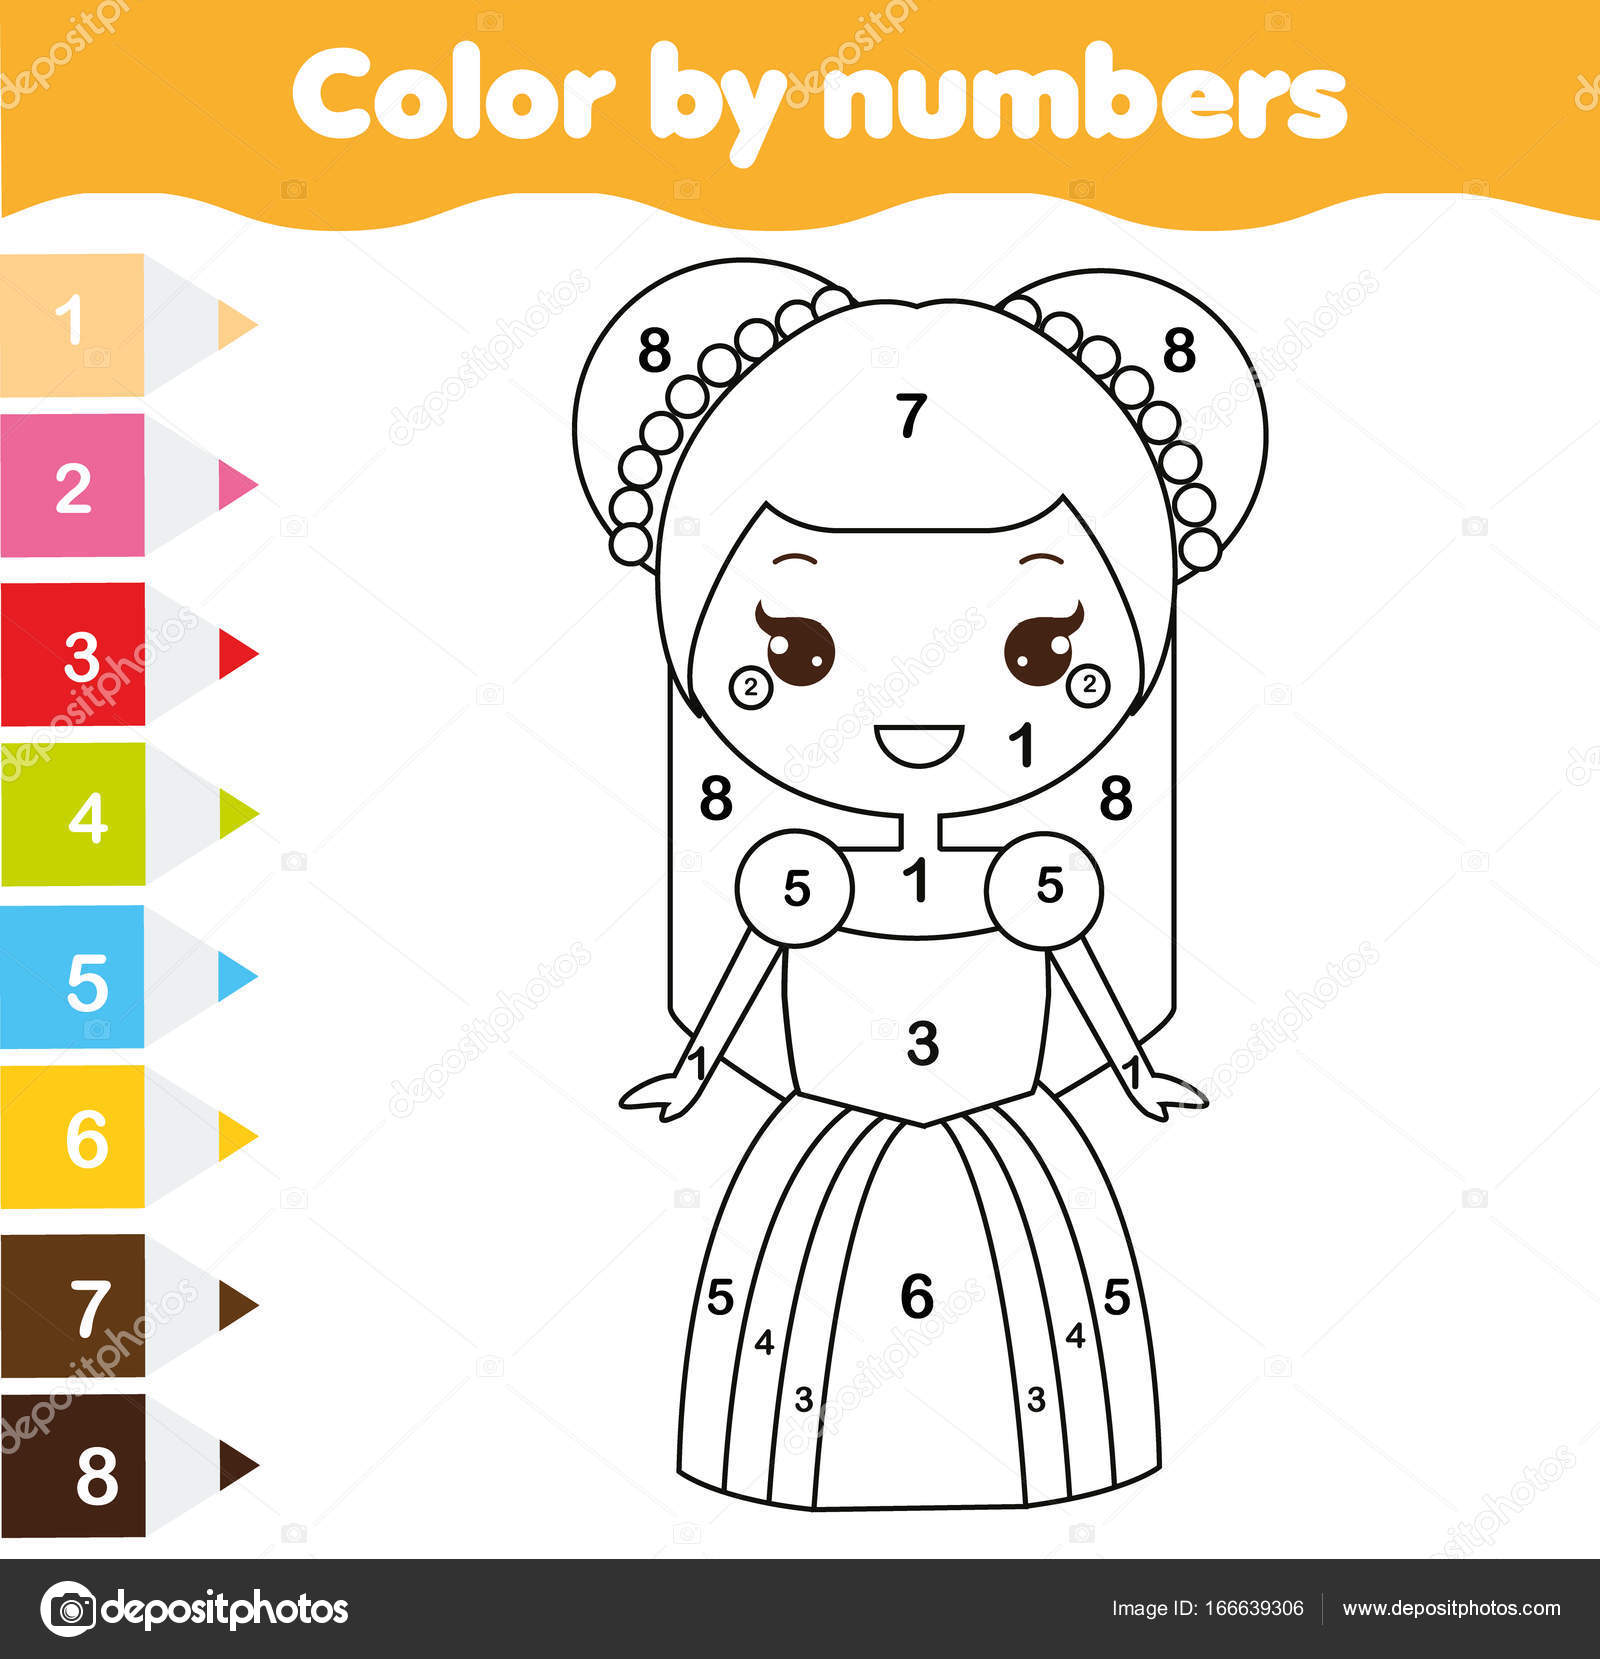 Color Numbers Educational Children Game Coloring Page Kids Cute